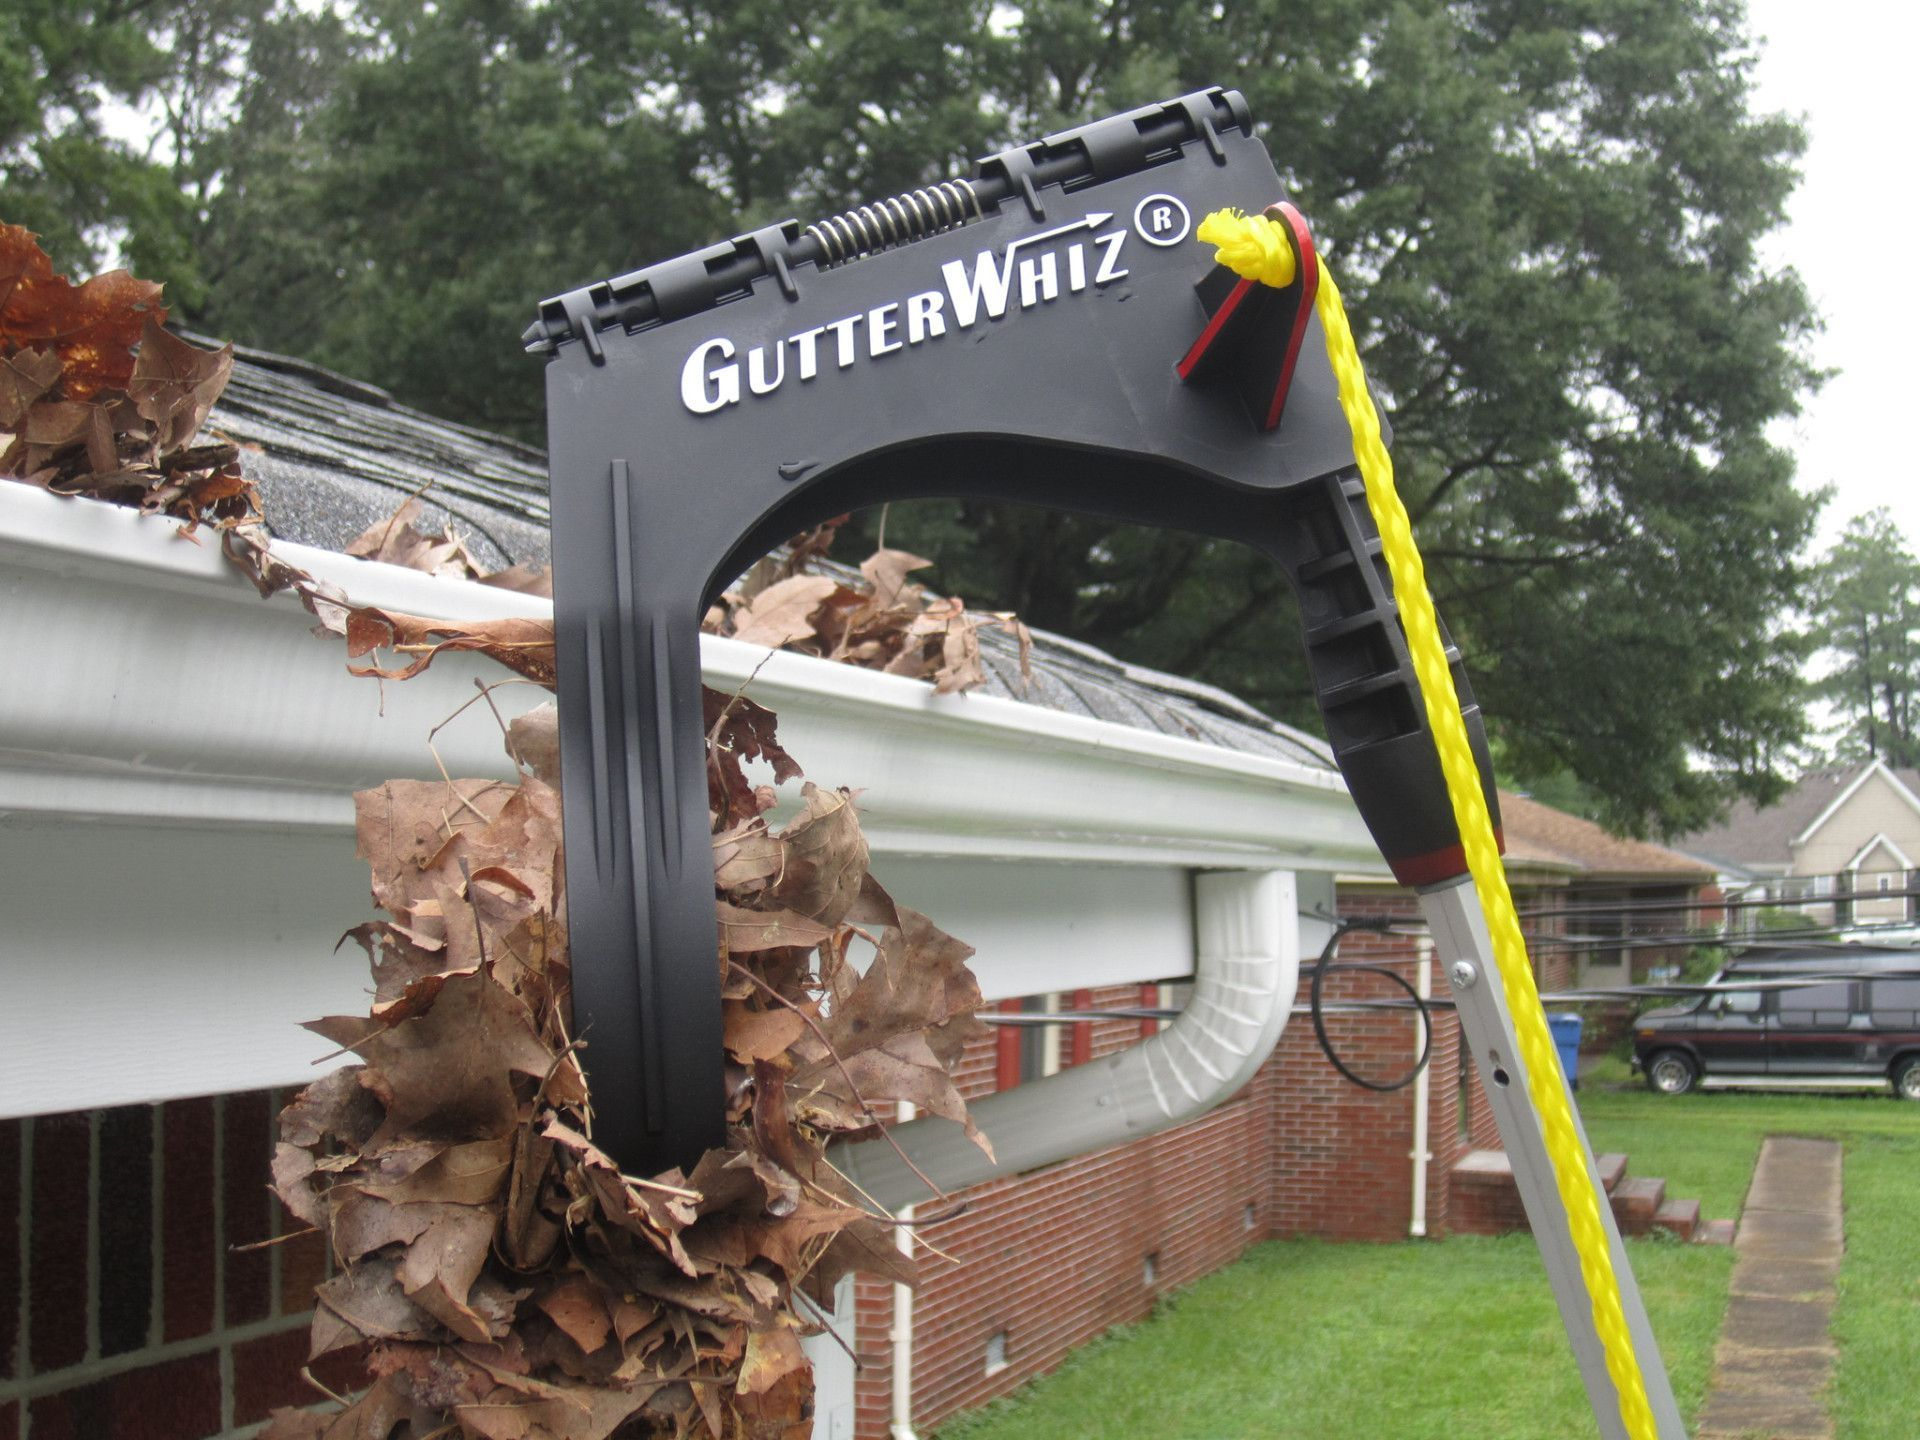 Do you HATE Cleaning Gutters? GutterWhiz-- the DIY Gutter Cleaner lets you clean your gutters from the safety of the ground without a dangerous ladder. (Extension pole sold separately to suit gutter height.) Buy GutterWhiz gutter cleaner and specially designed GutterWhiz Extension Pole on Amazon. Enter GutterWhiz in Amazon search box.